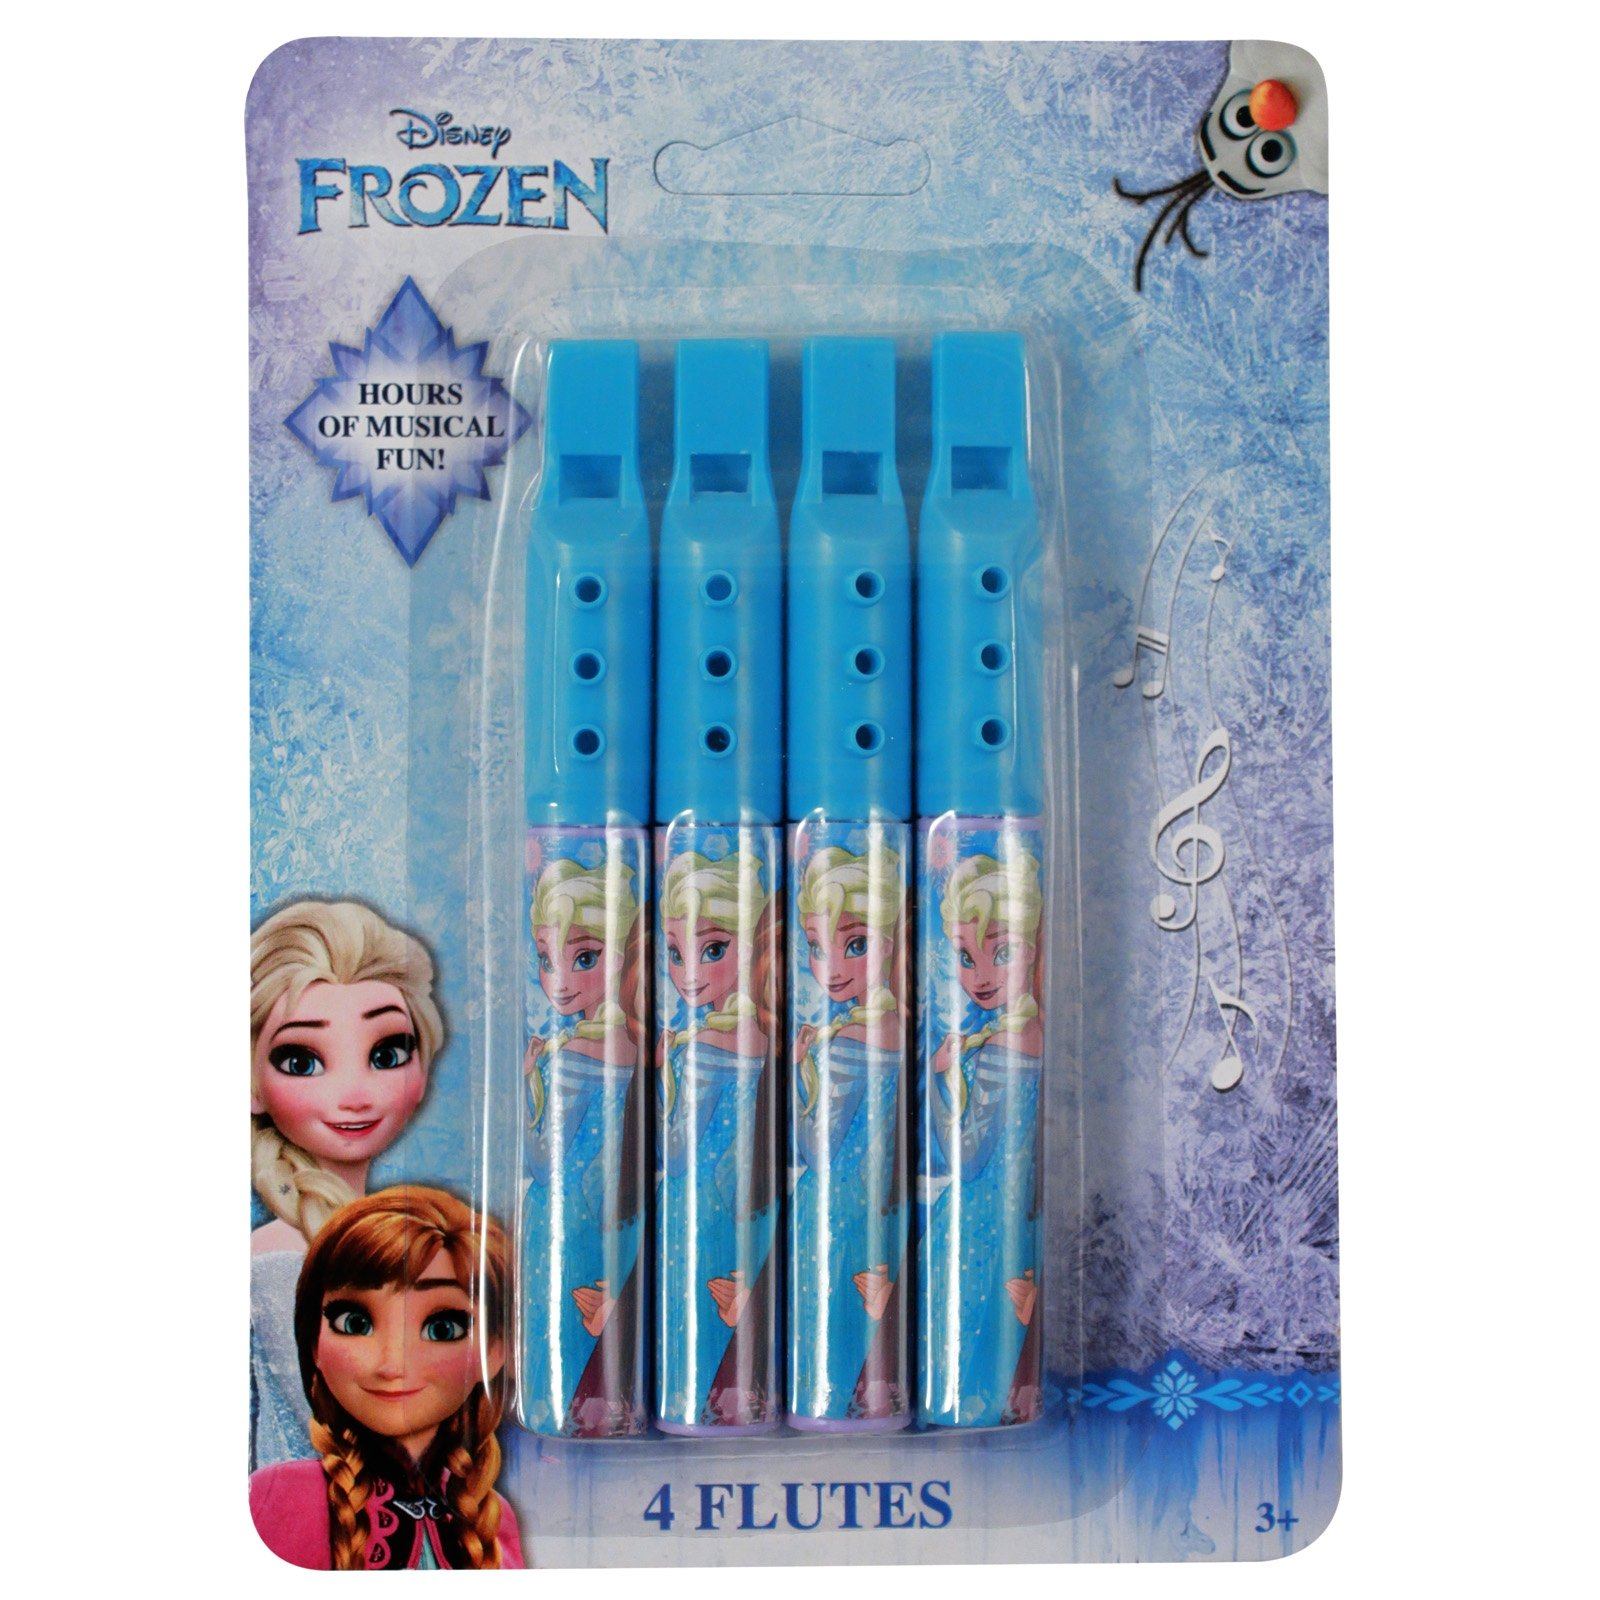 Disney Frozen Princess Elsa and Anna Mini Flute 2 Pack Music Instrument Toy